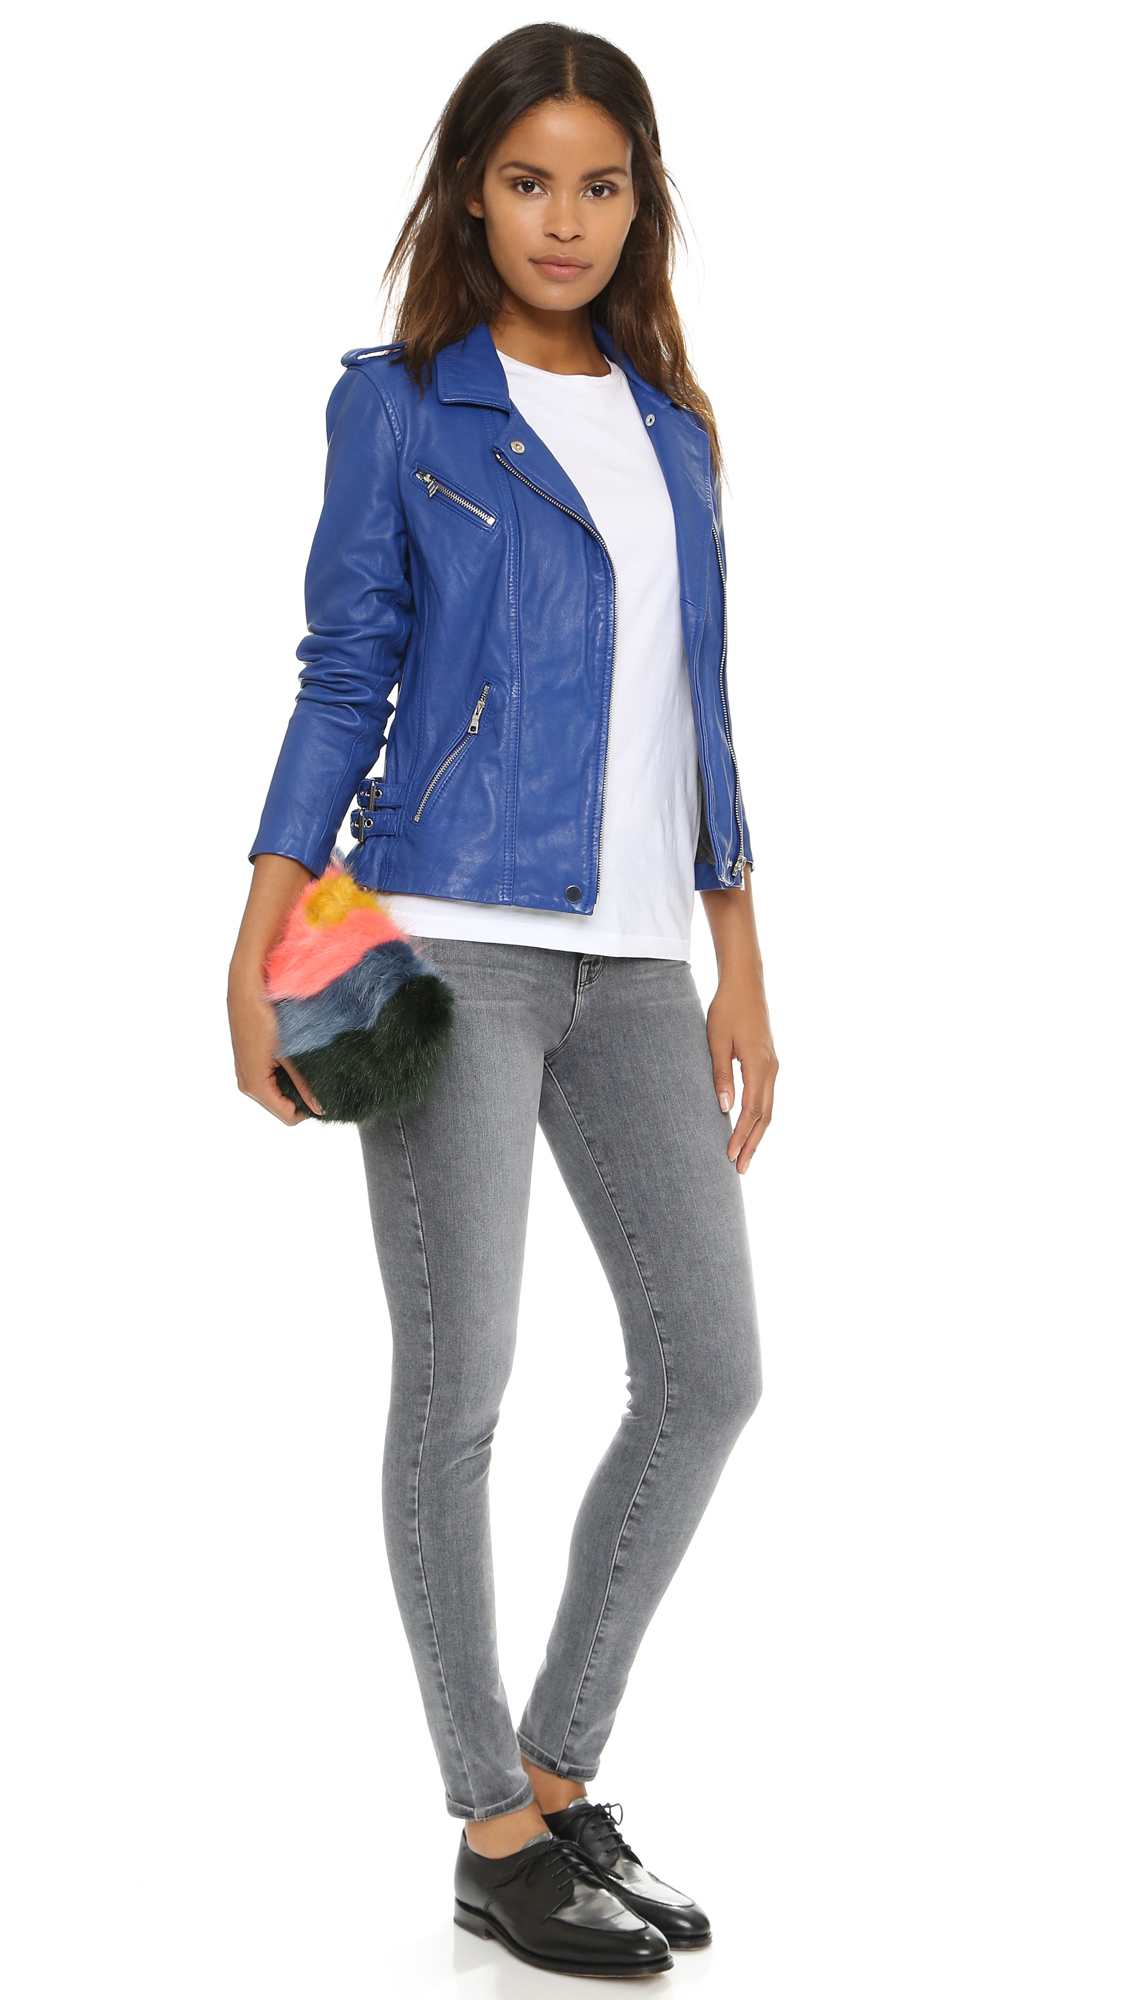 Rebecca taylor Washed Leather Jacket - Electric Blue in Blue | Lyst